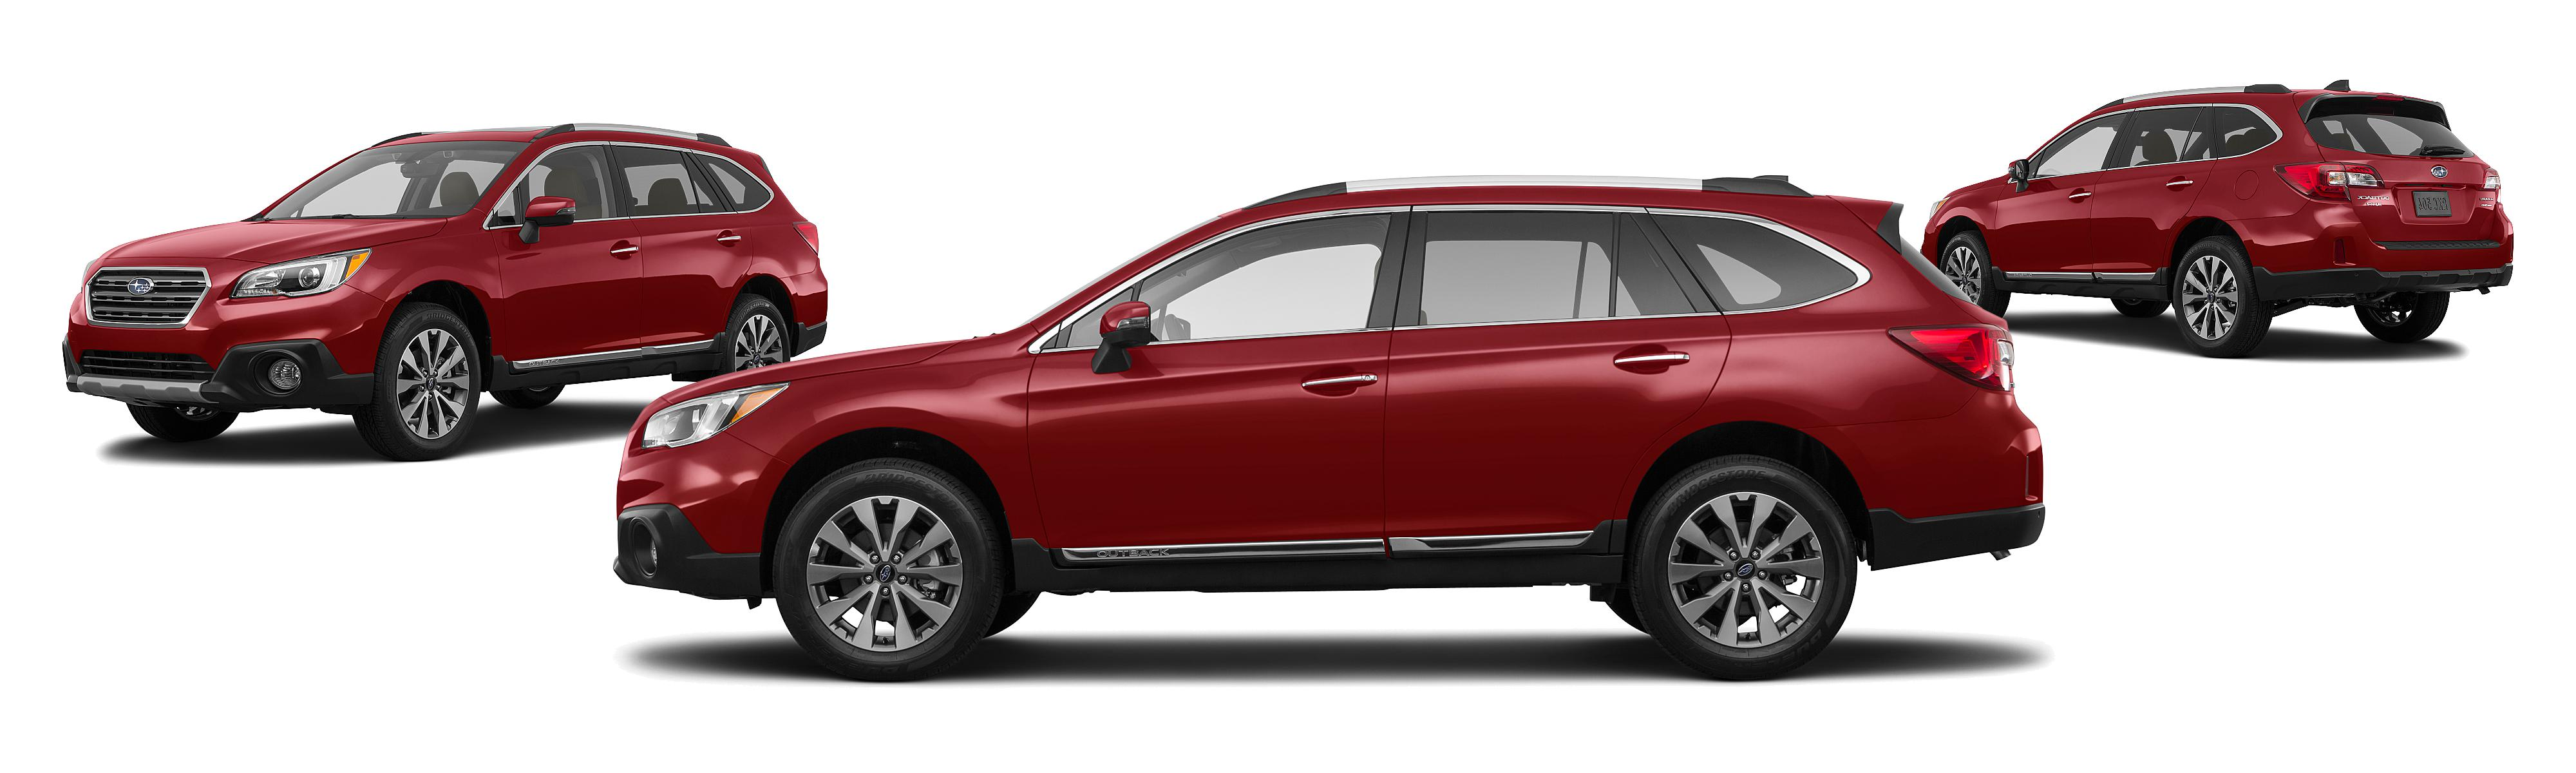 2017 Red Subaru Outback Best New Cars For 2018